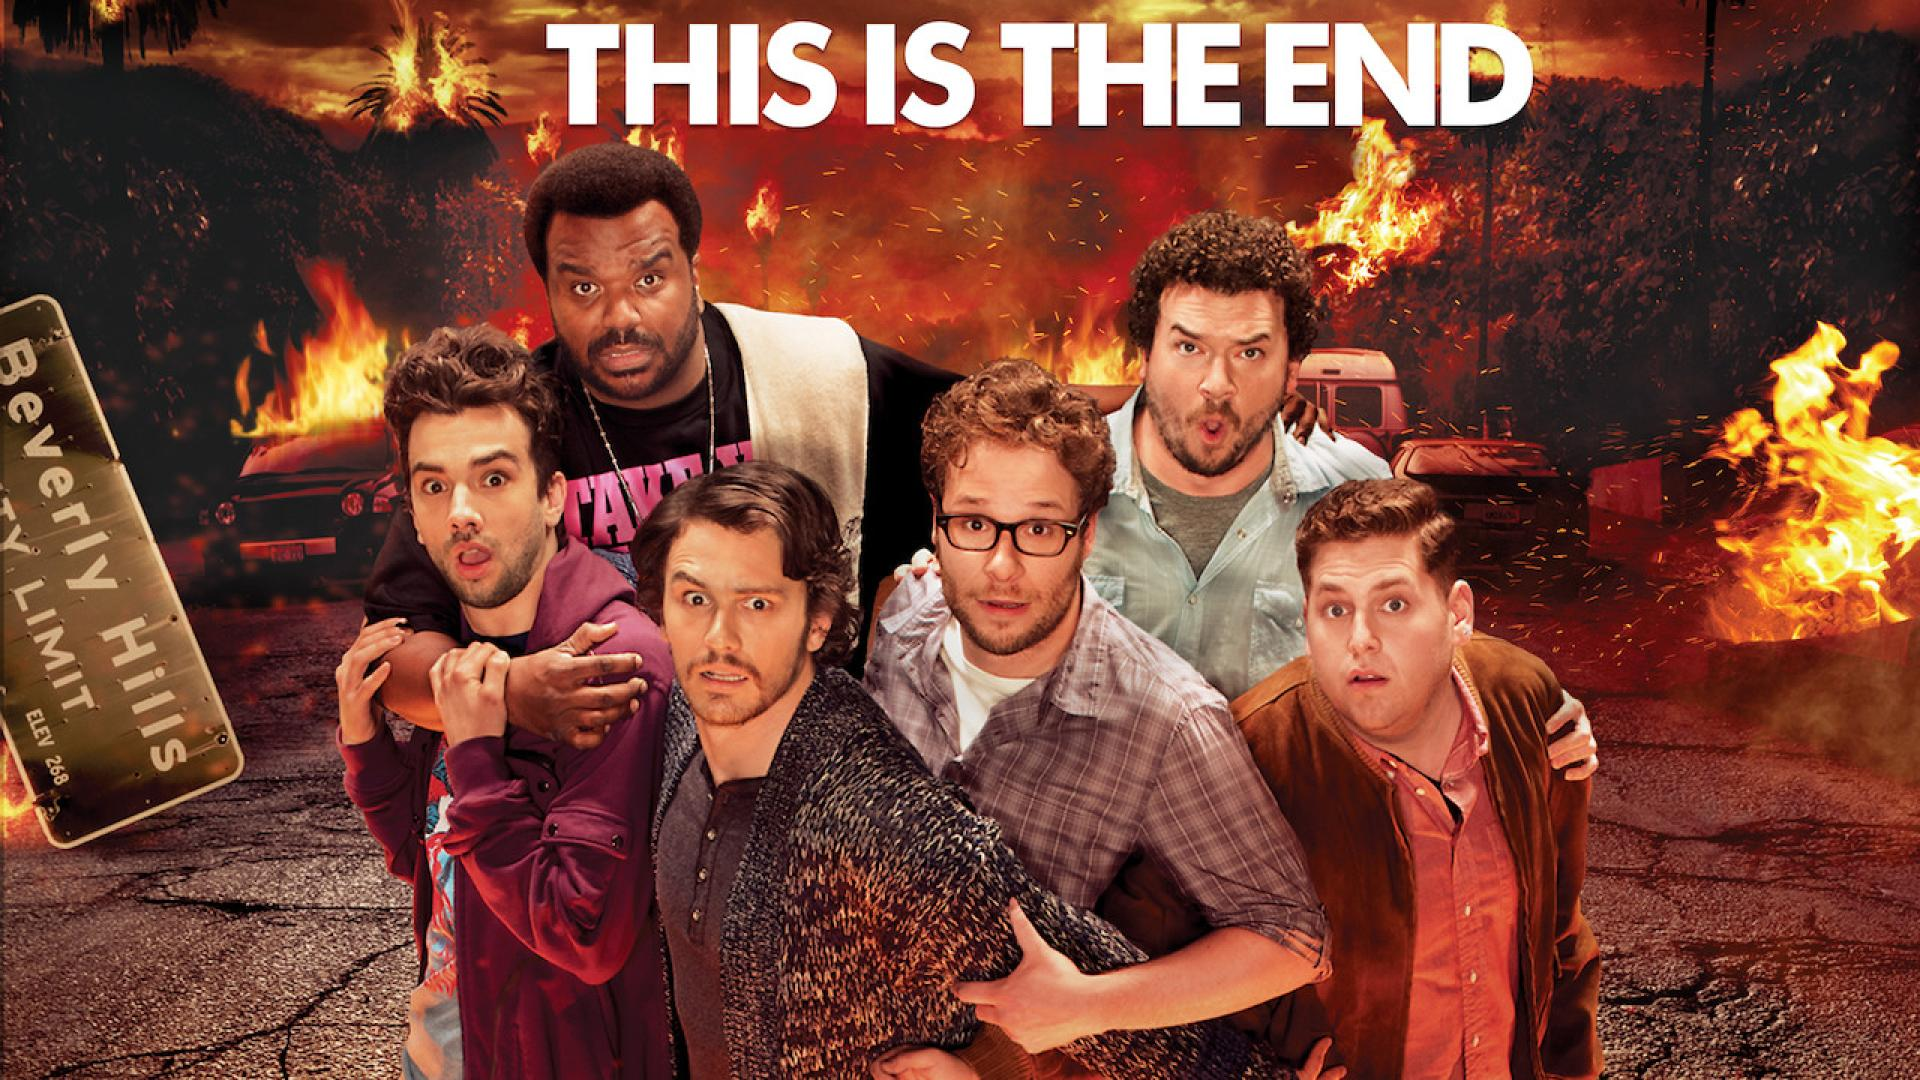 Itt a vége / This is the End (2013)